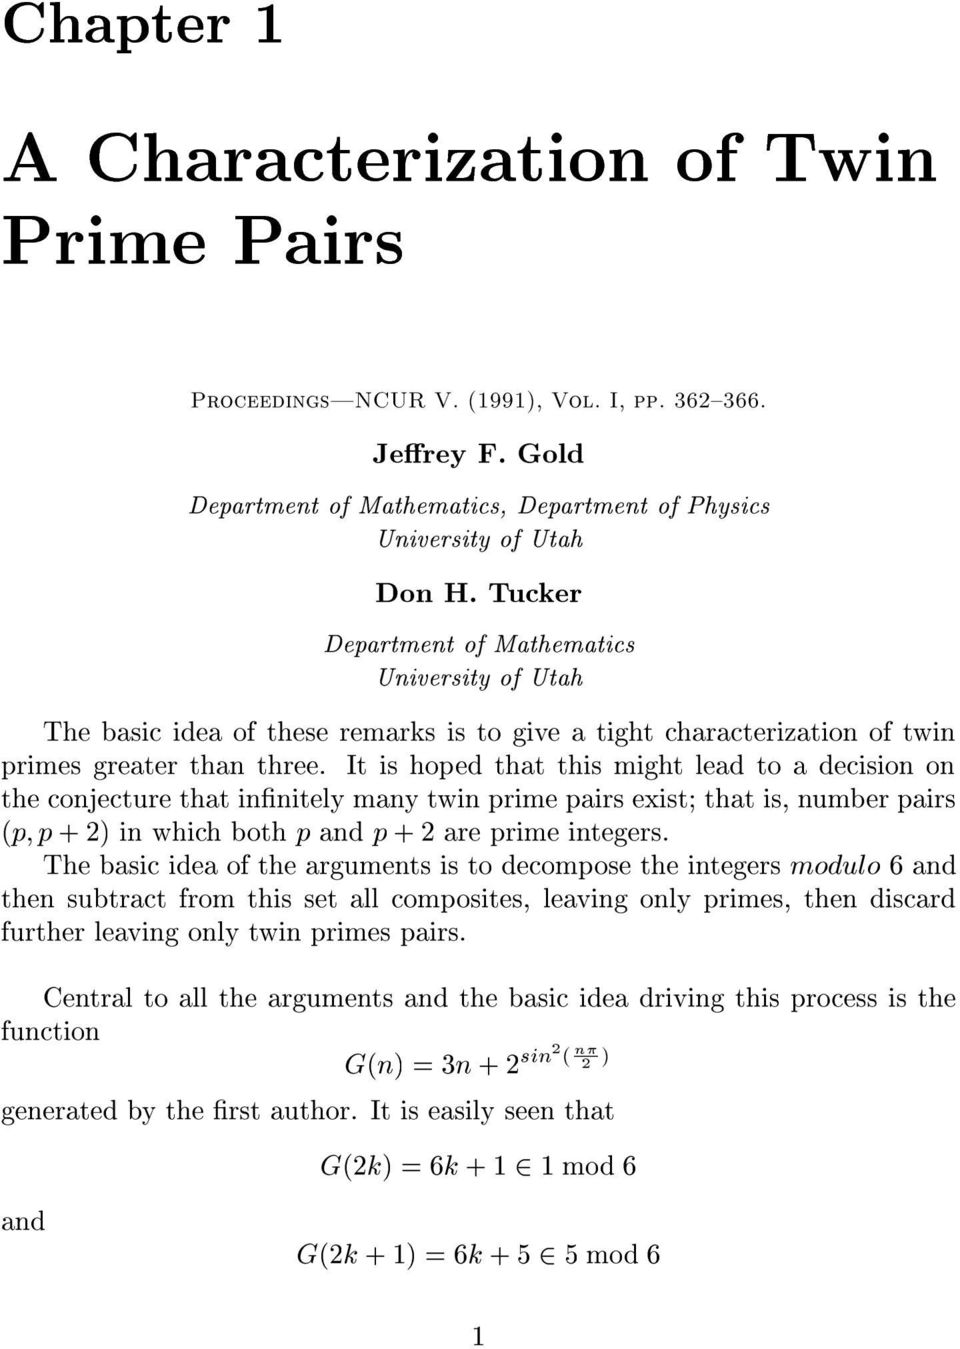 It is hoped that this might lead to a decision on the conjecture that innitely many twin prime pairs exist; that is, number pairs (p; p +2)inwhich both p and p + 2 are prime integers.